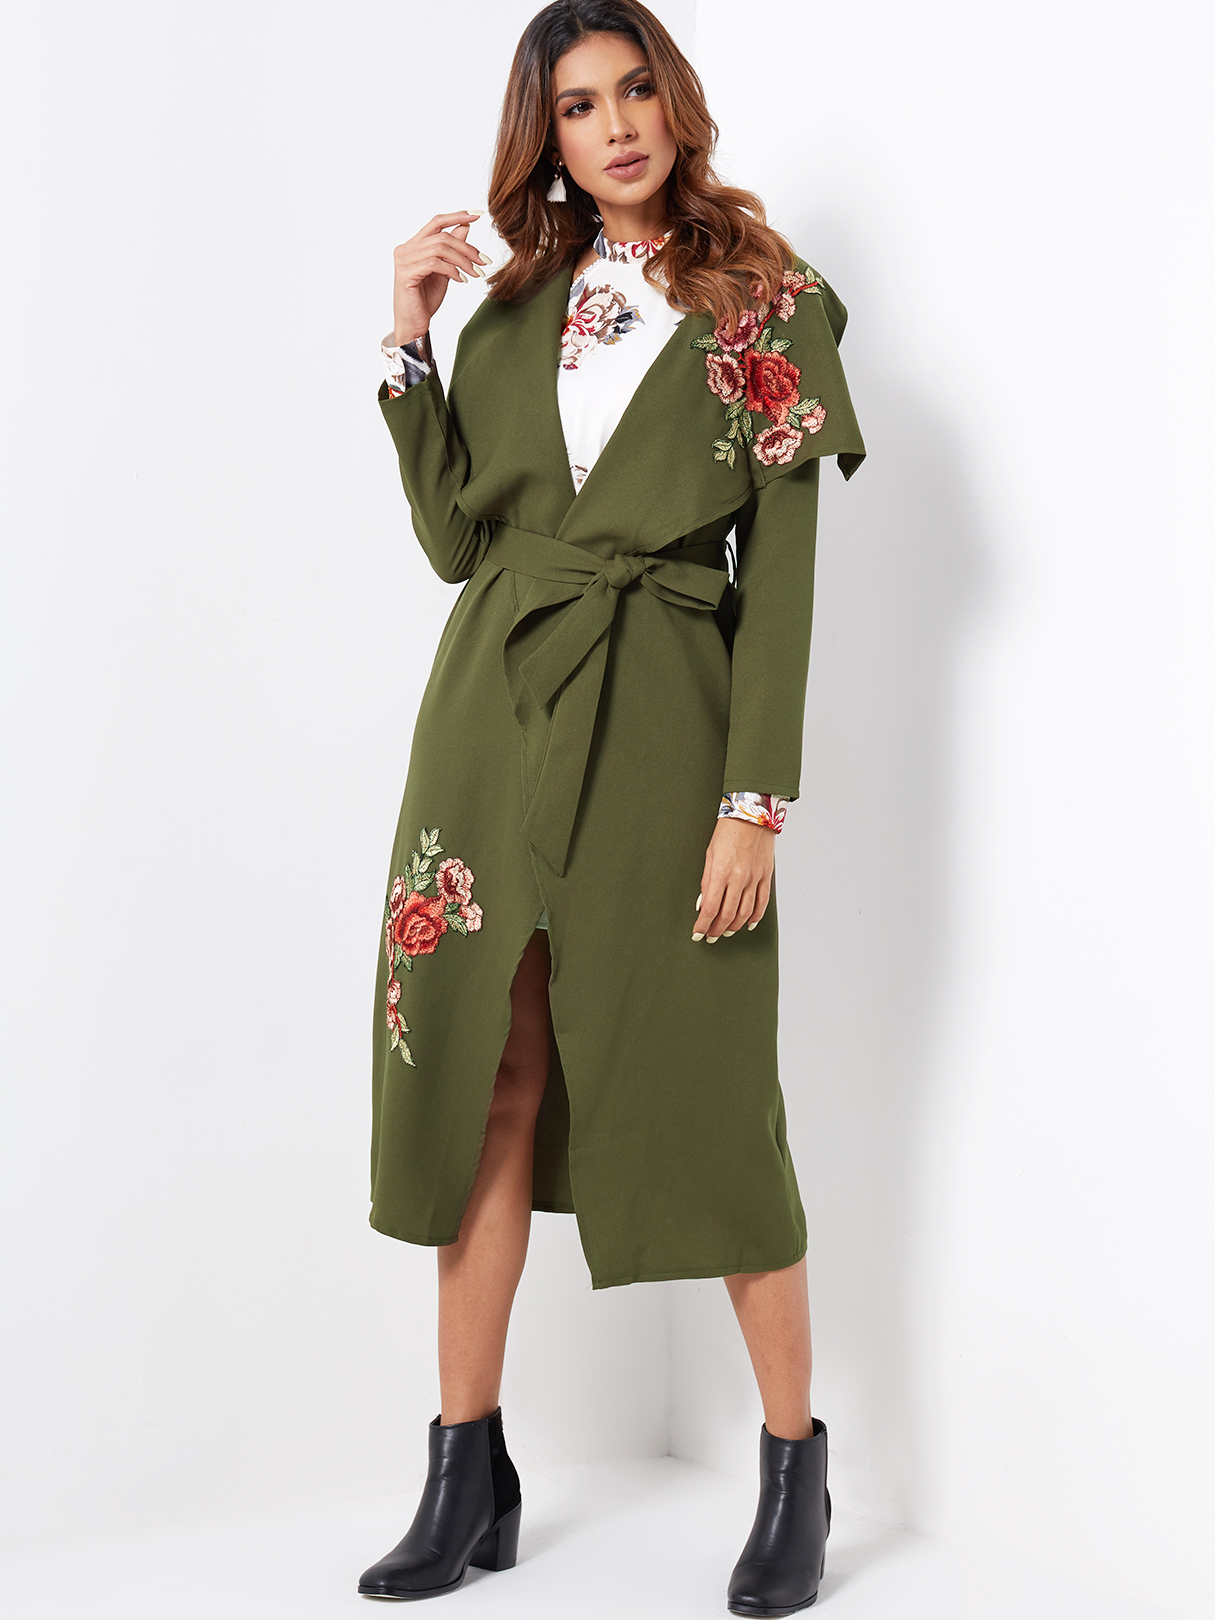 6282923d2d1 Green Embroidered Lapel Collar Long Sleeves Trench Coat With Belt ...